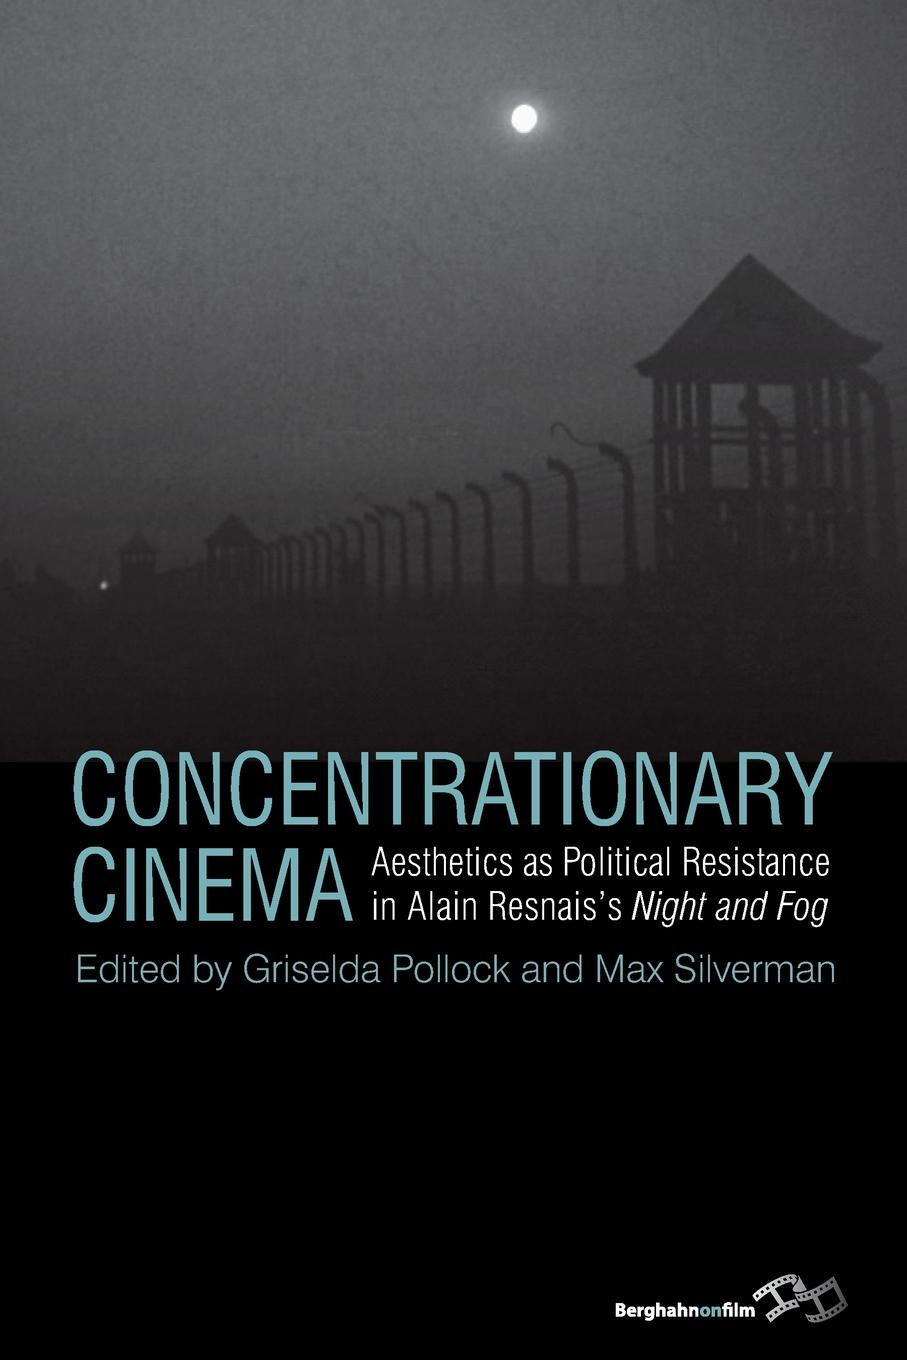 Concentrationary Cinema. Aesthetics as Political Resistance in Alain Resnais's Night and Fog